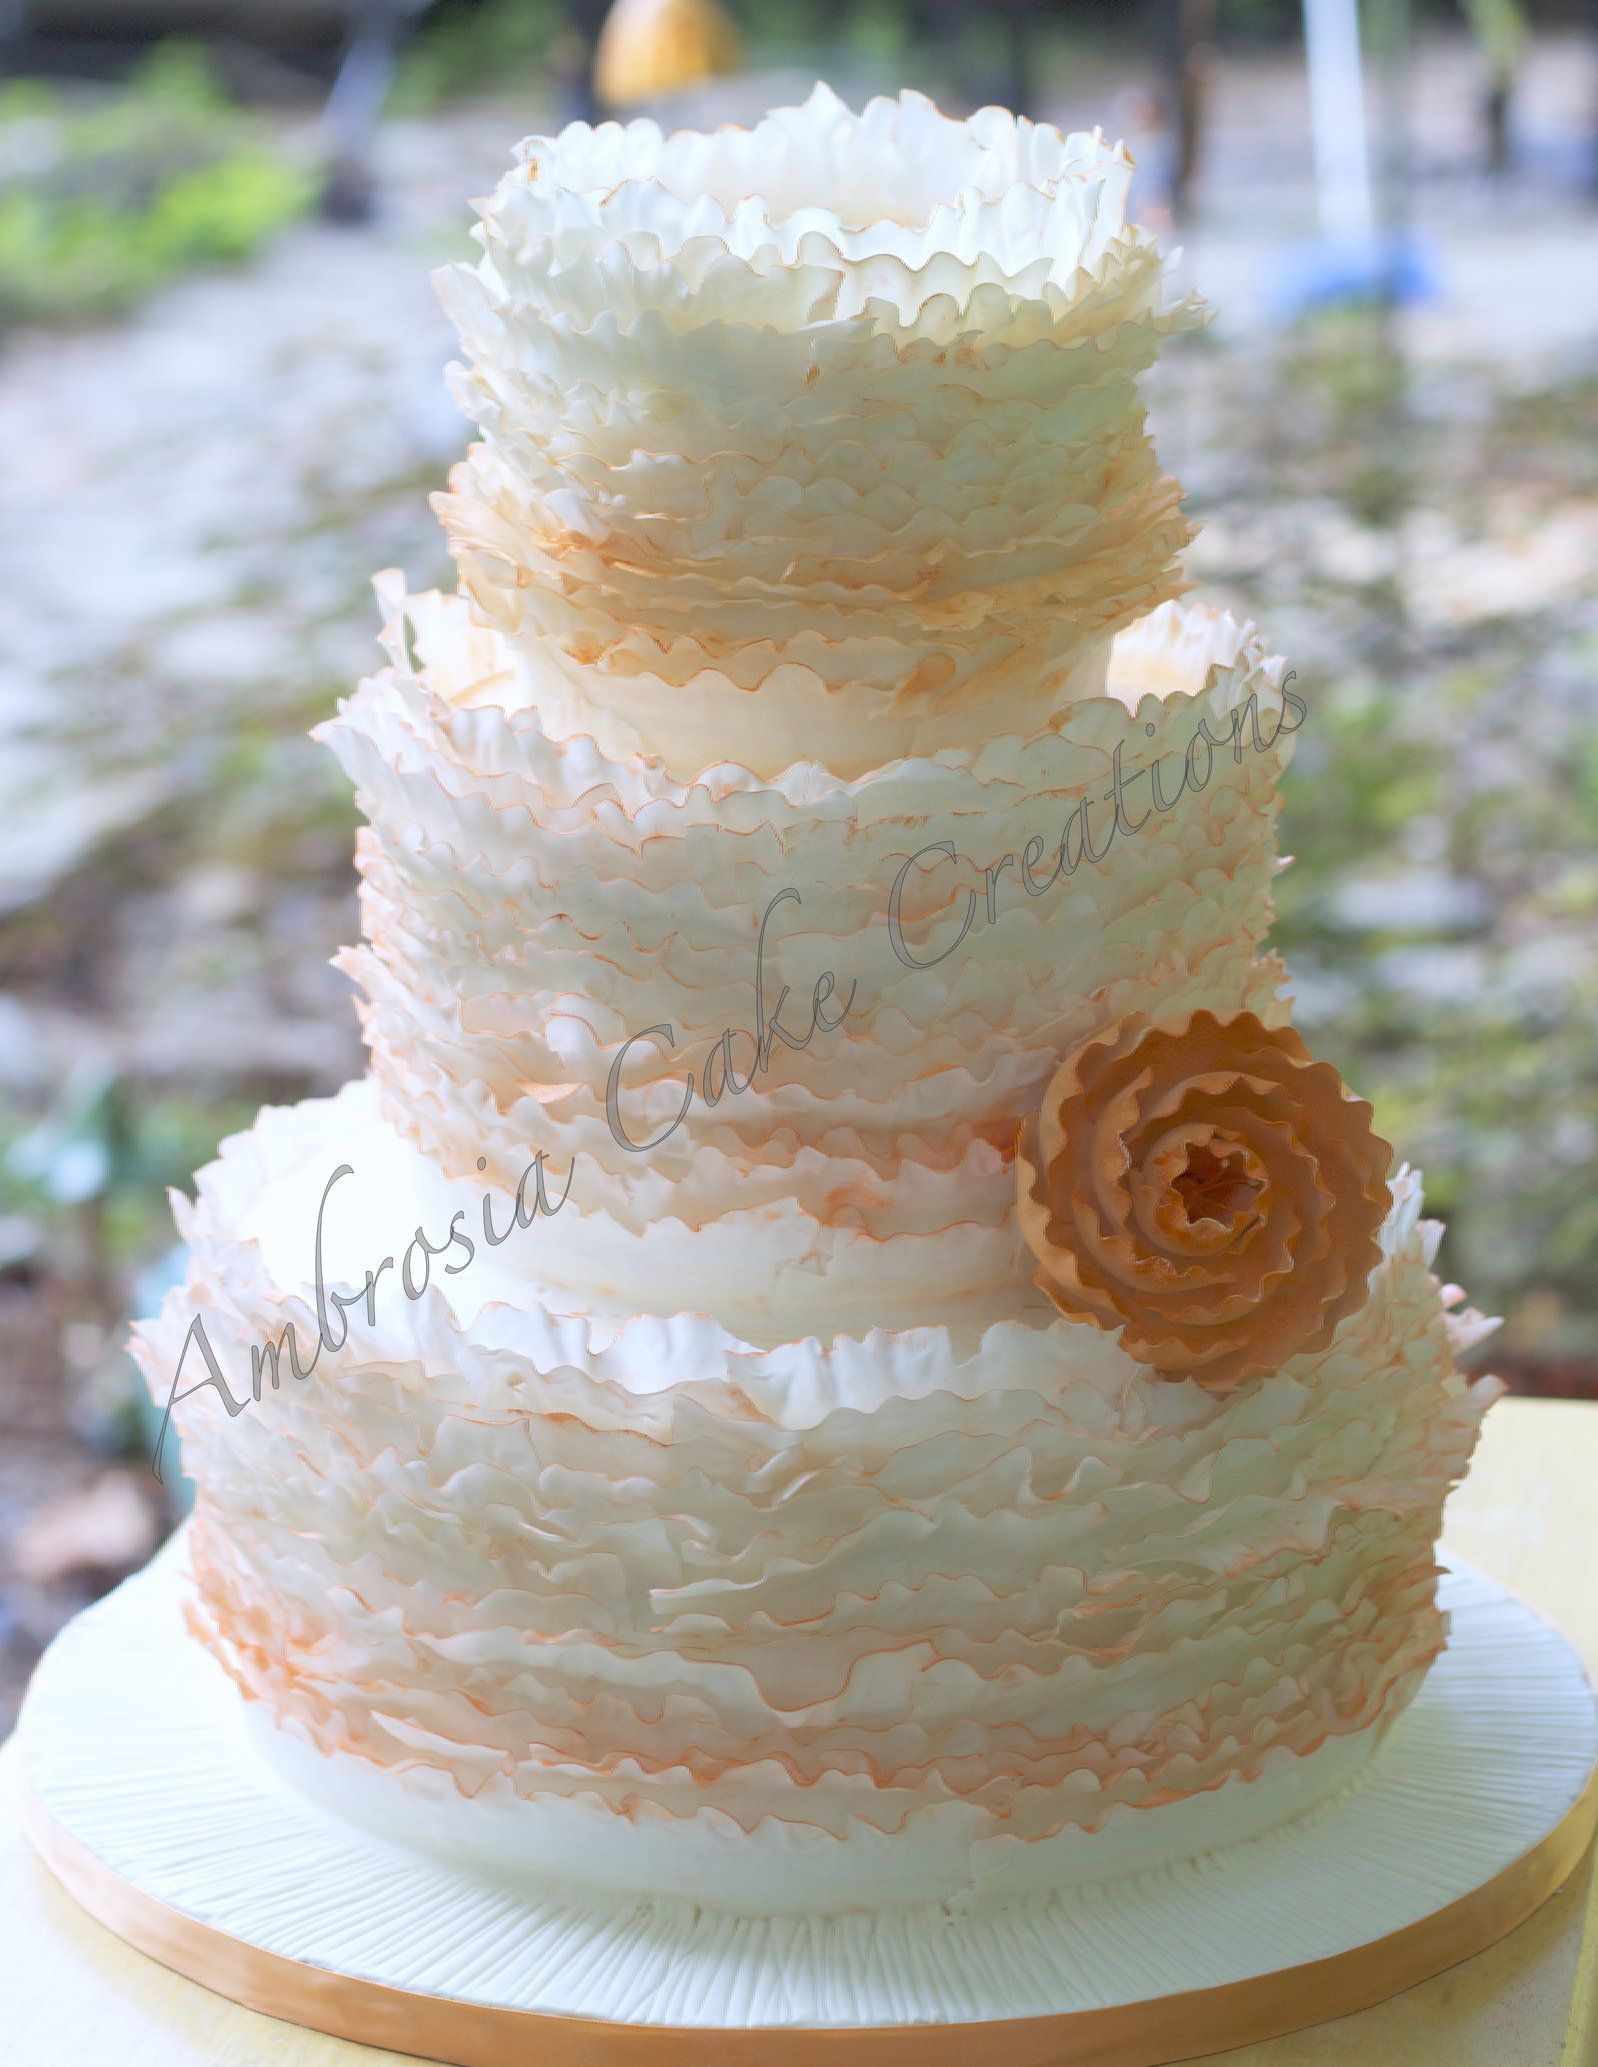 This Romantic Wedding Cake Is Decorated With Paper Thin Ruffles Colored  With An Orange Ombre Effect. The Wedding Took Place In Raleigh, NC.